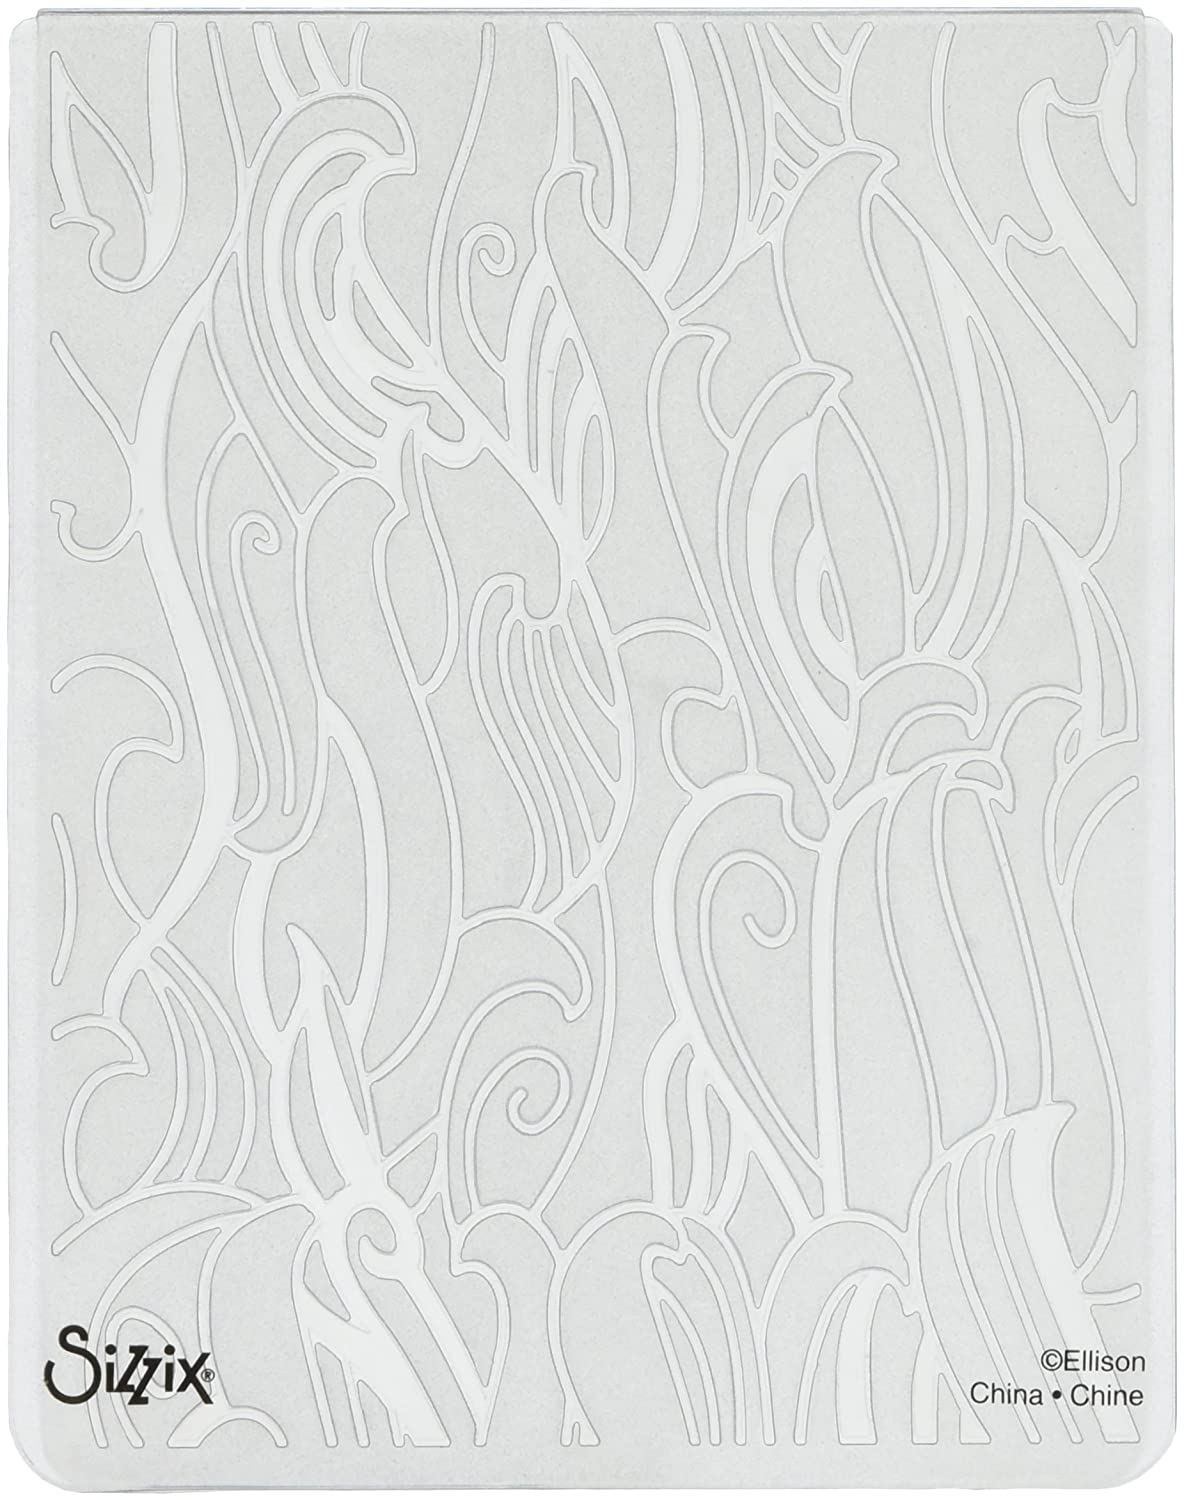 Sizzix 660360 Textured Impressions Embossing Folder Waves by Sharyn Sowell, Red Ellison